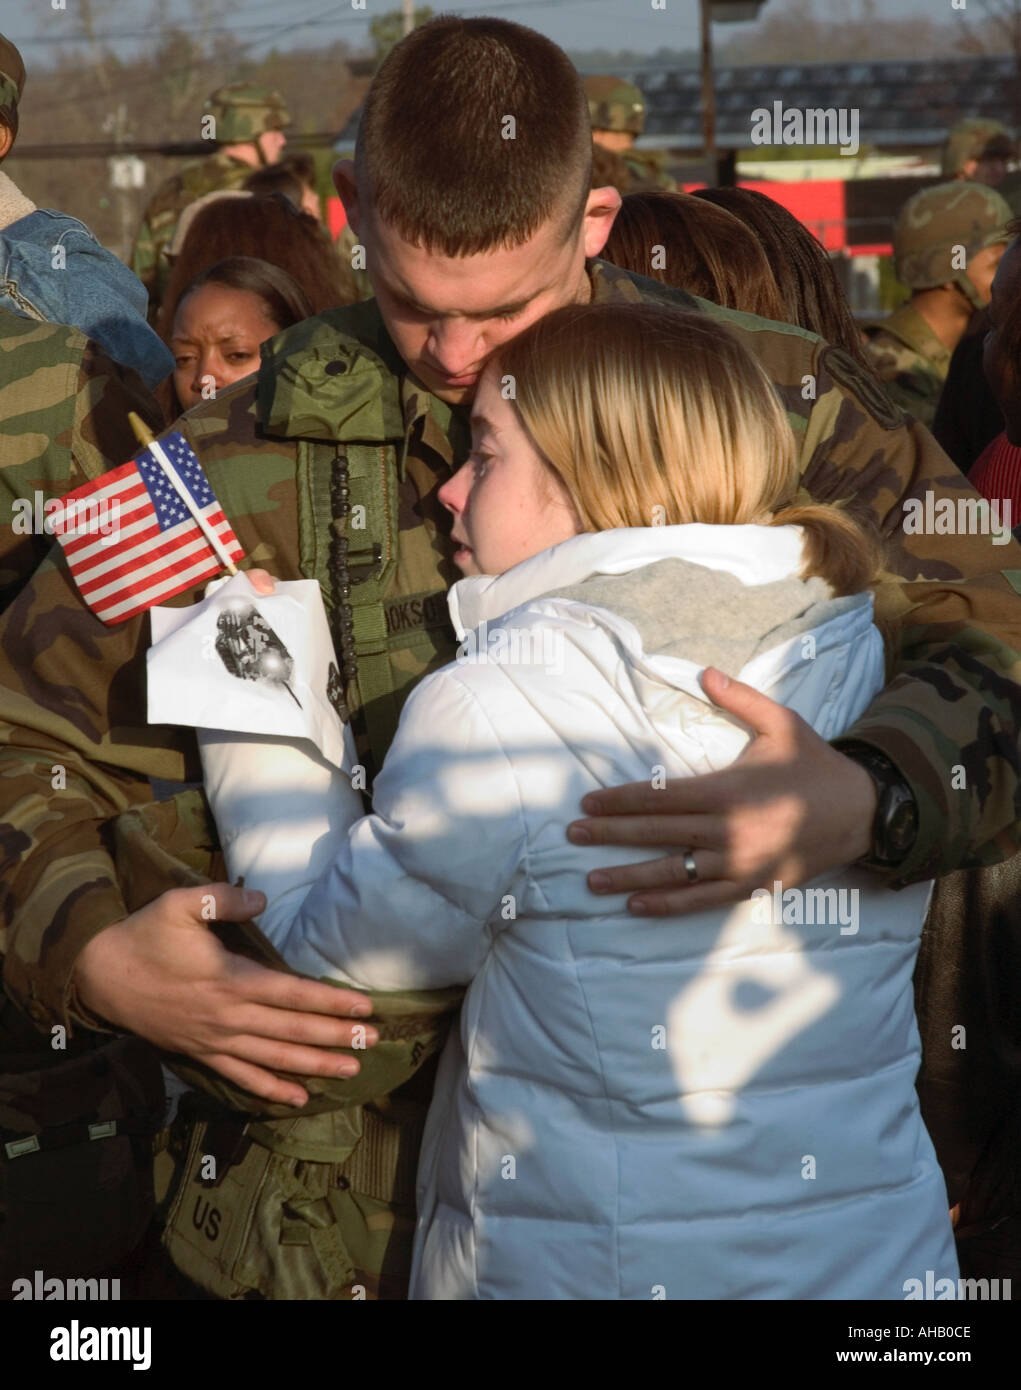 Soldier 20 to 24 Leaving for Deployment to Iraq Hugs His Wife Holding US Flag USA - Stock Image